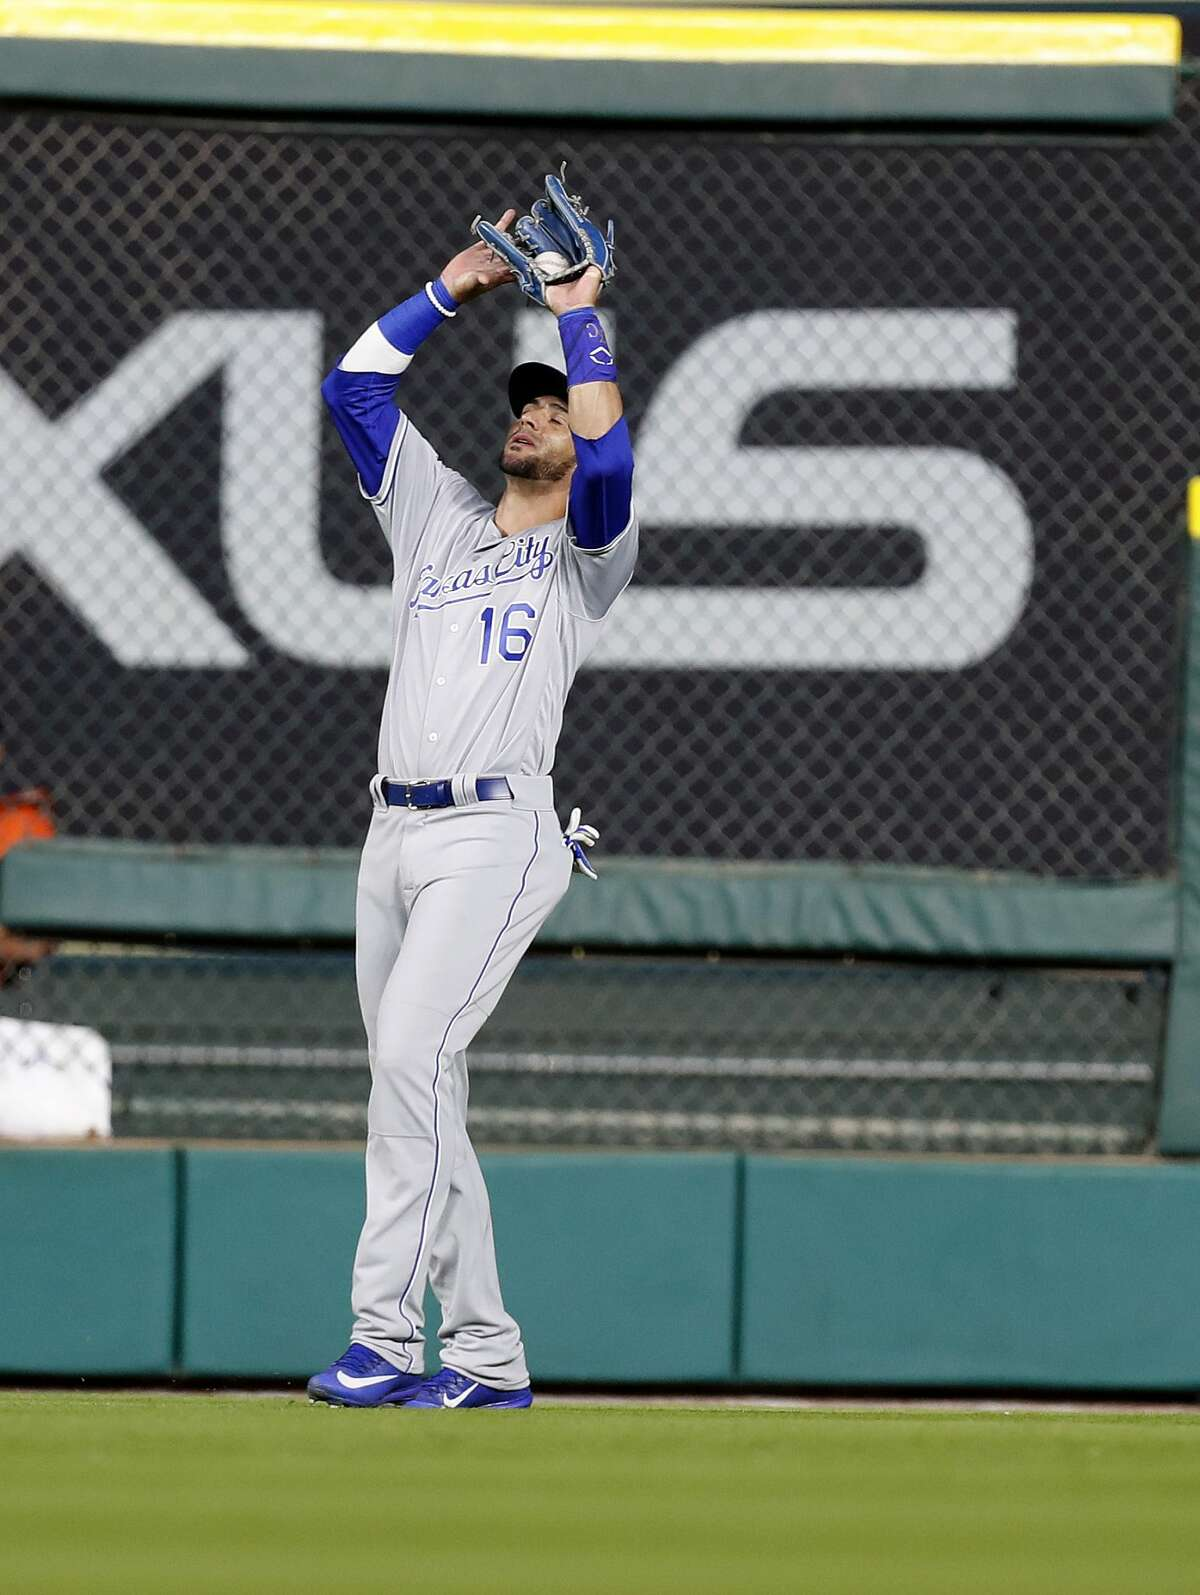 Kansas City Royals right fielder Paulo Orlando (16) catches Evan Gattis' fly ball for the final out of an MLB baseball game at Minute Maid Park, Friday, April 7, 2017, in Houston. ( Karen Warren / Houston Chronicle )